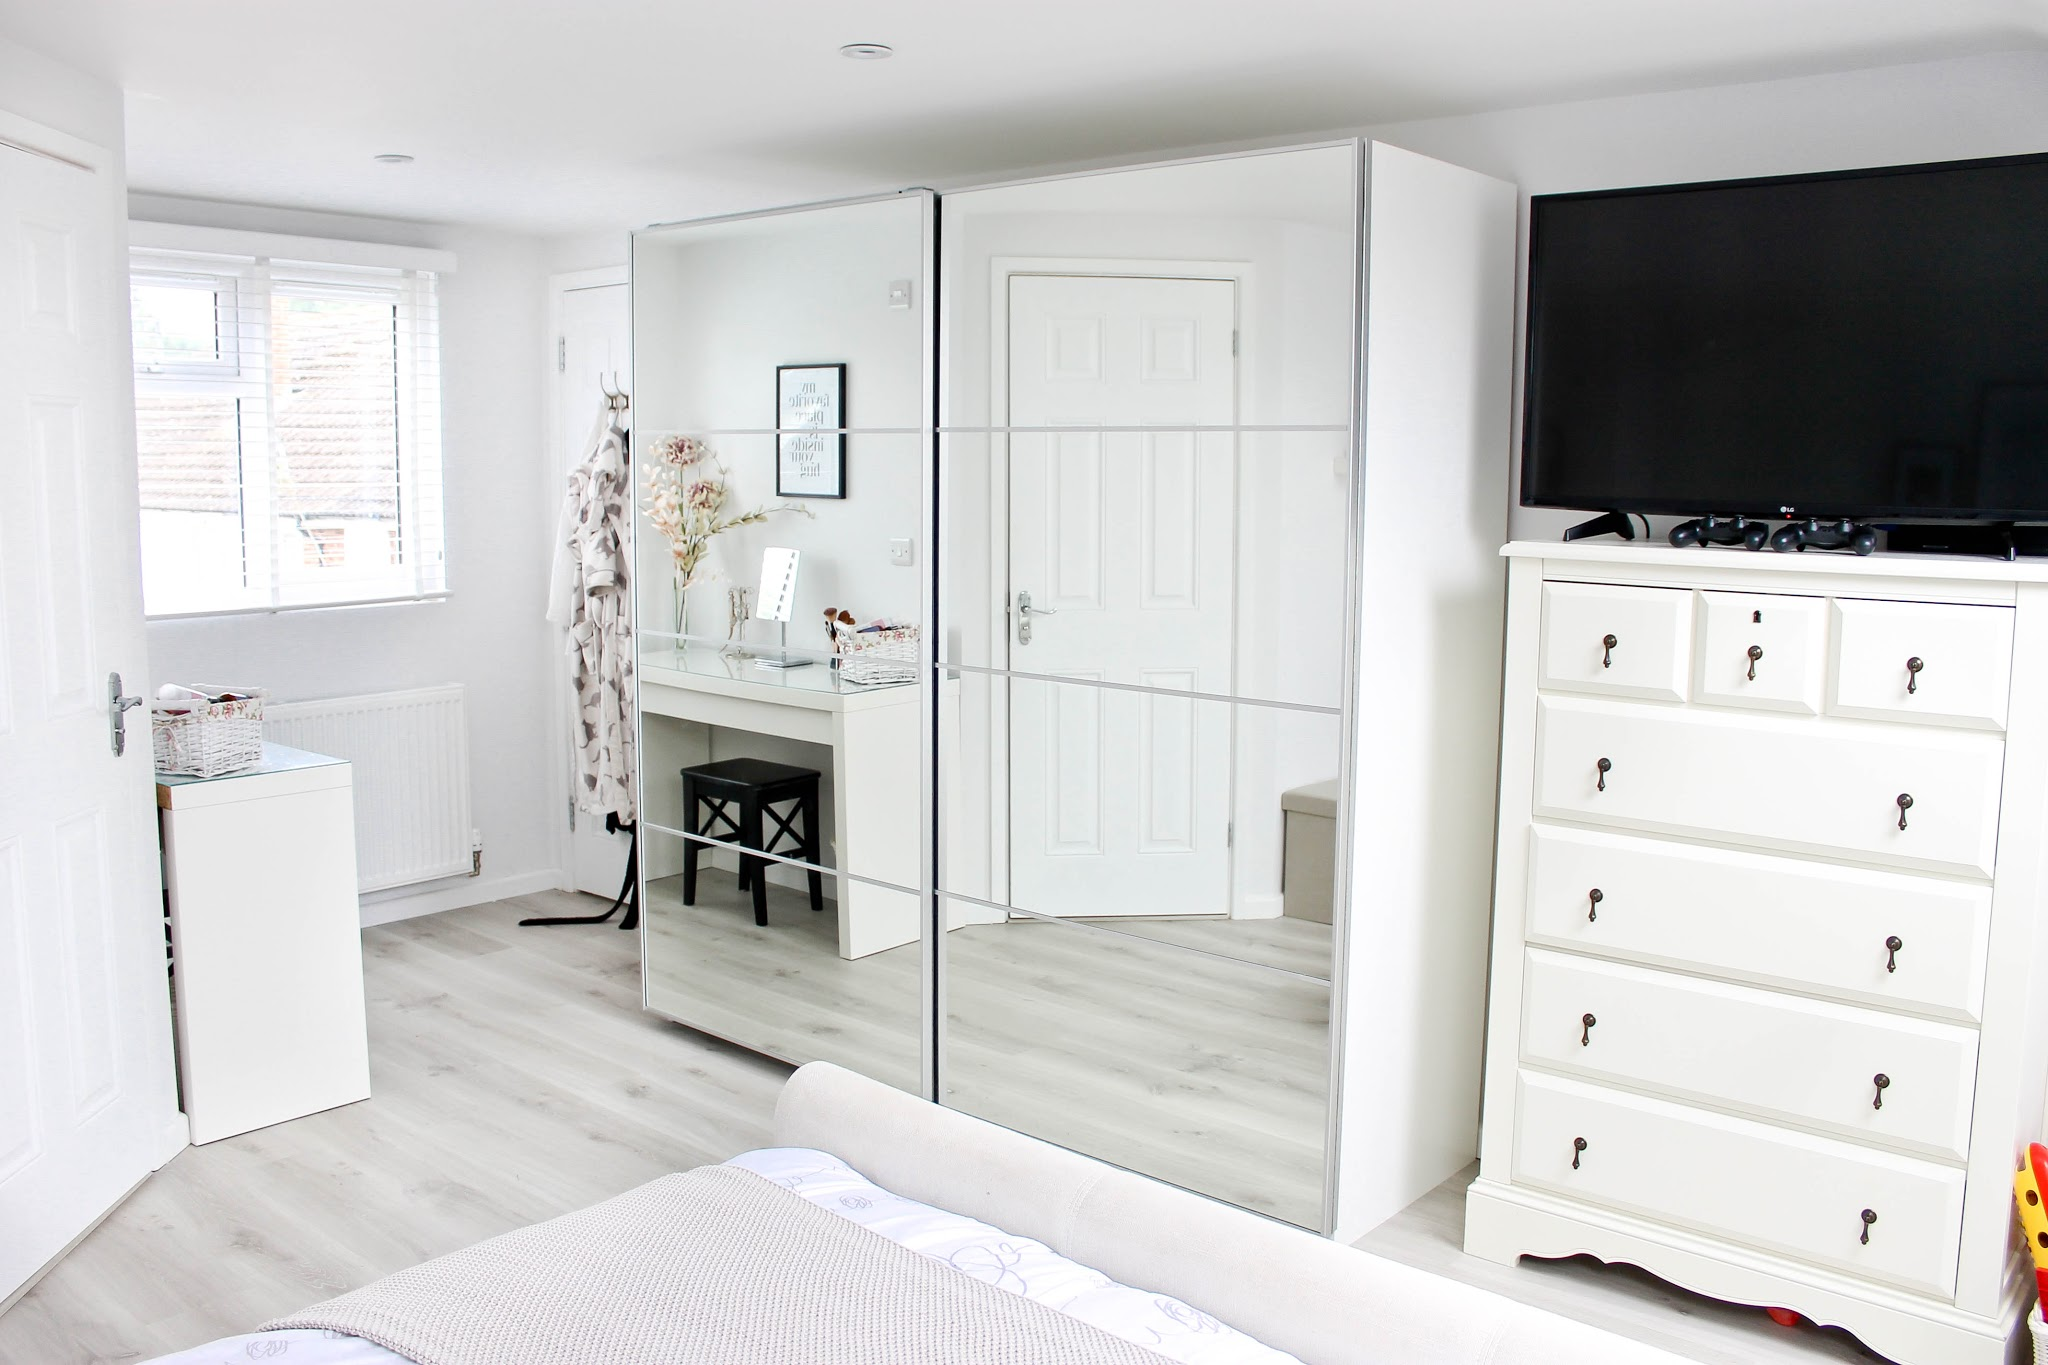 Our New Dormer Loft Conversion and Ensuite, dormer loft, loft conversion, dormer loft conversion cost, dormer loft conversion ideas, dormer attic conversion, types of loft conversion